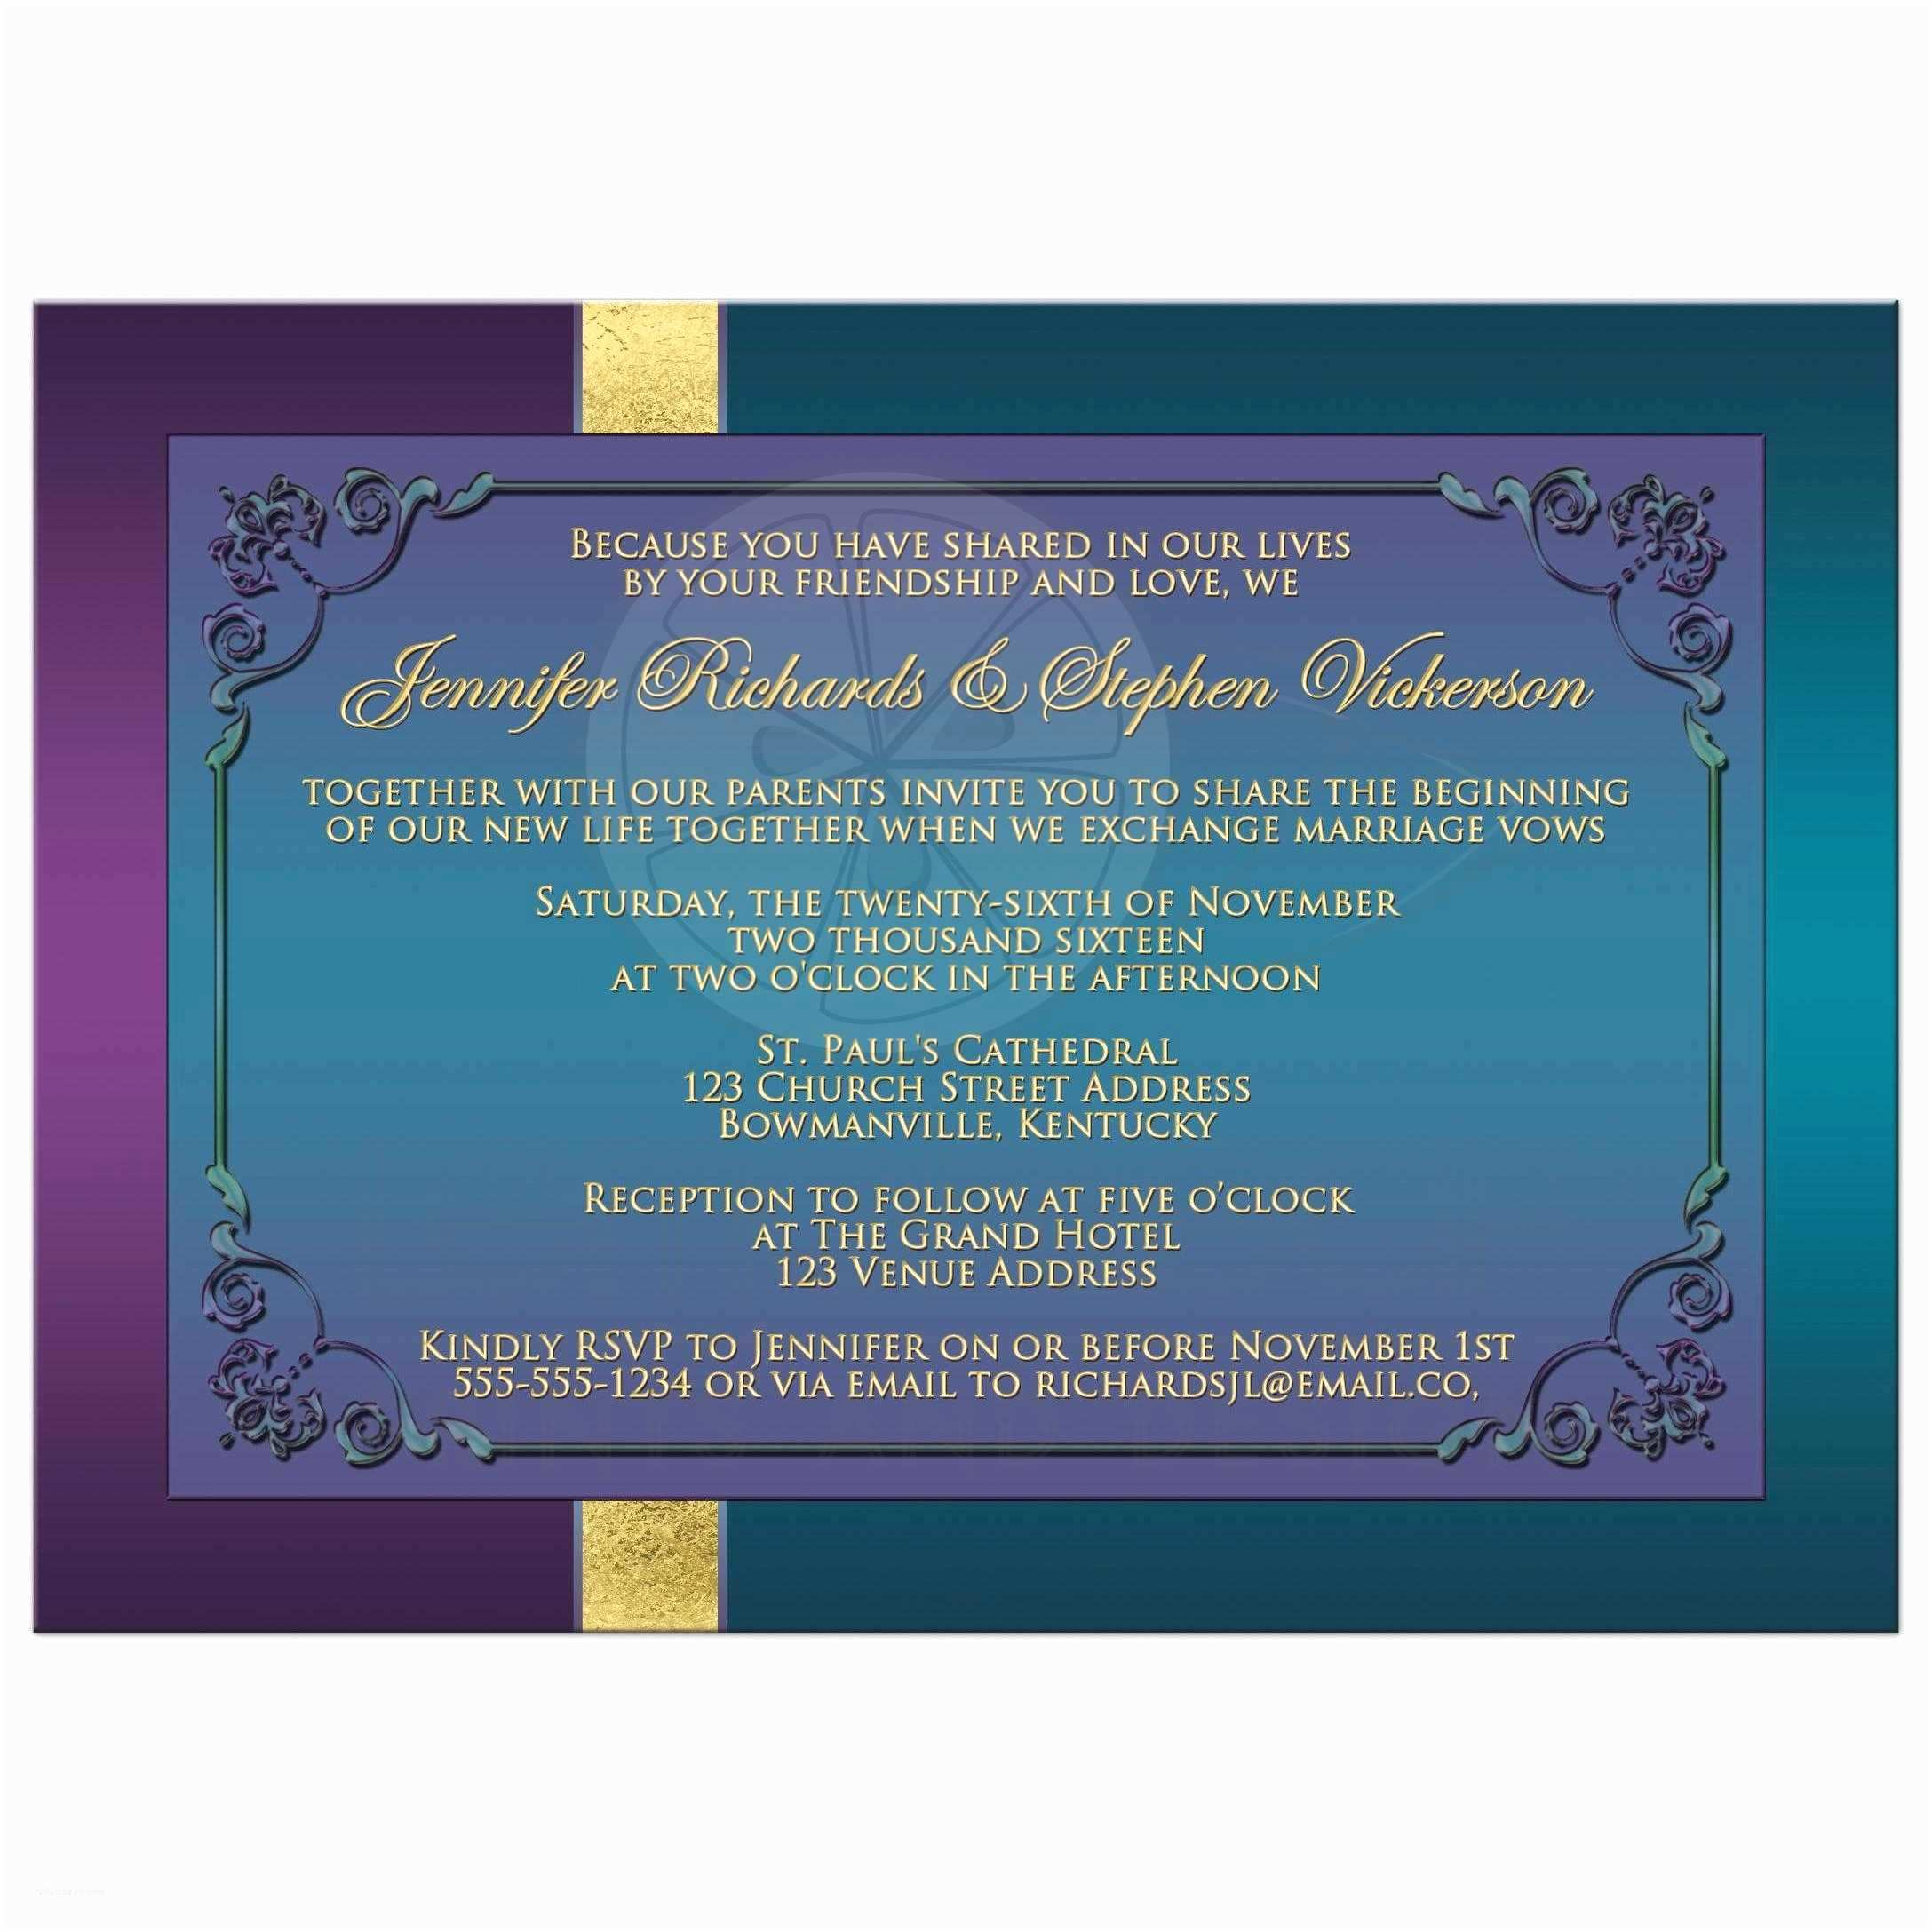 Teal Wedding Invitations Wedding Invitation